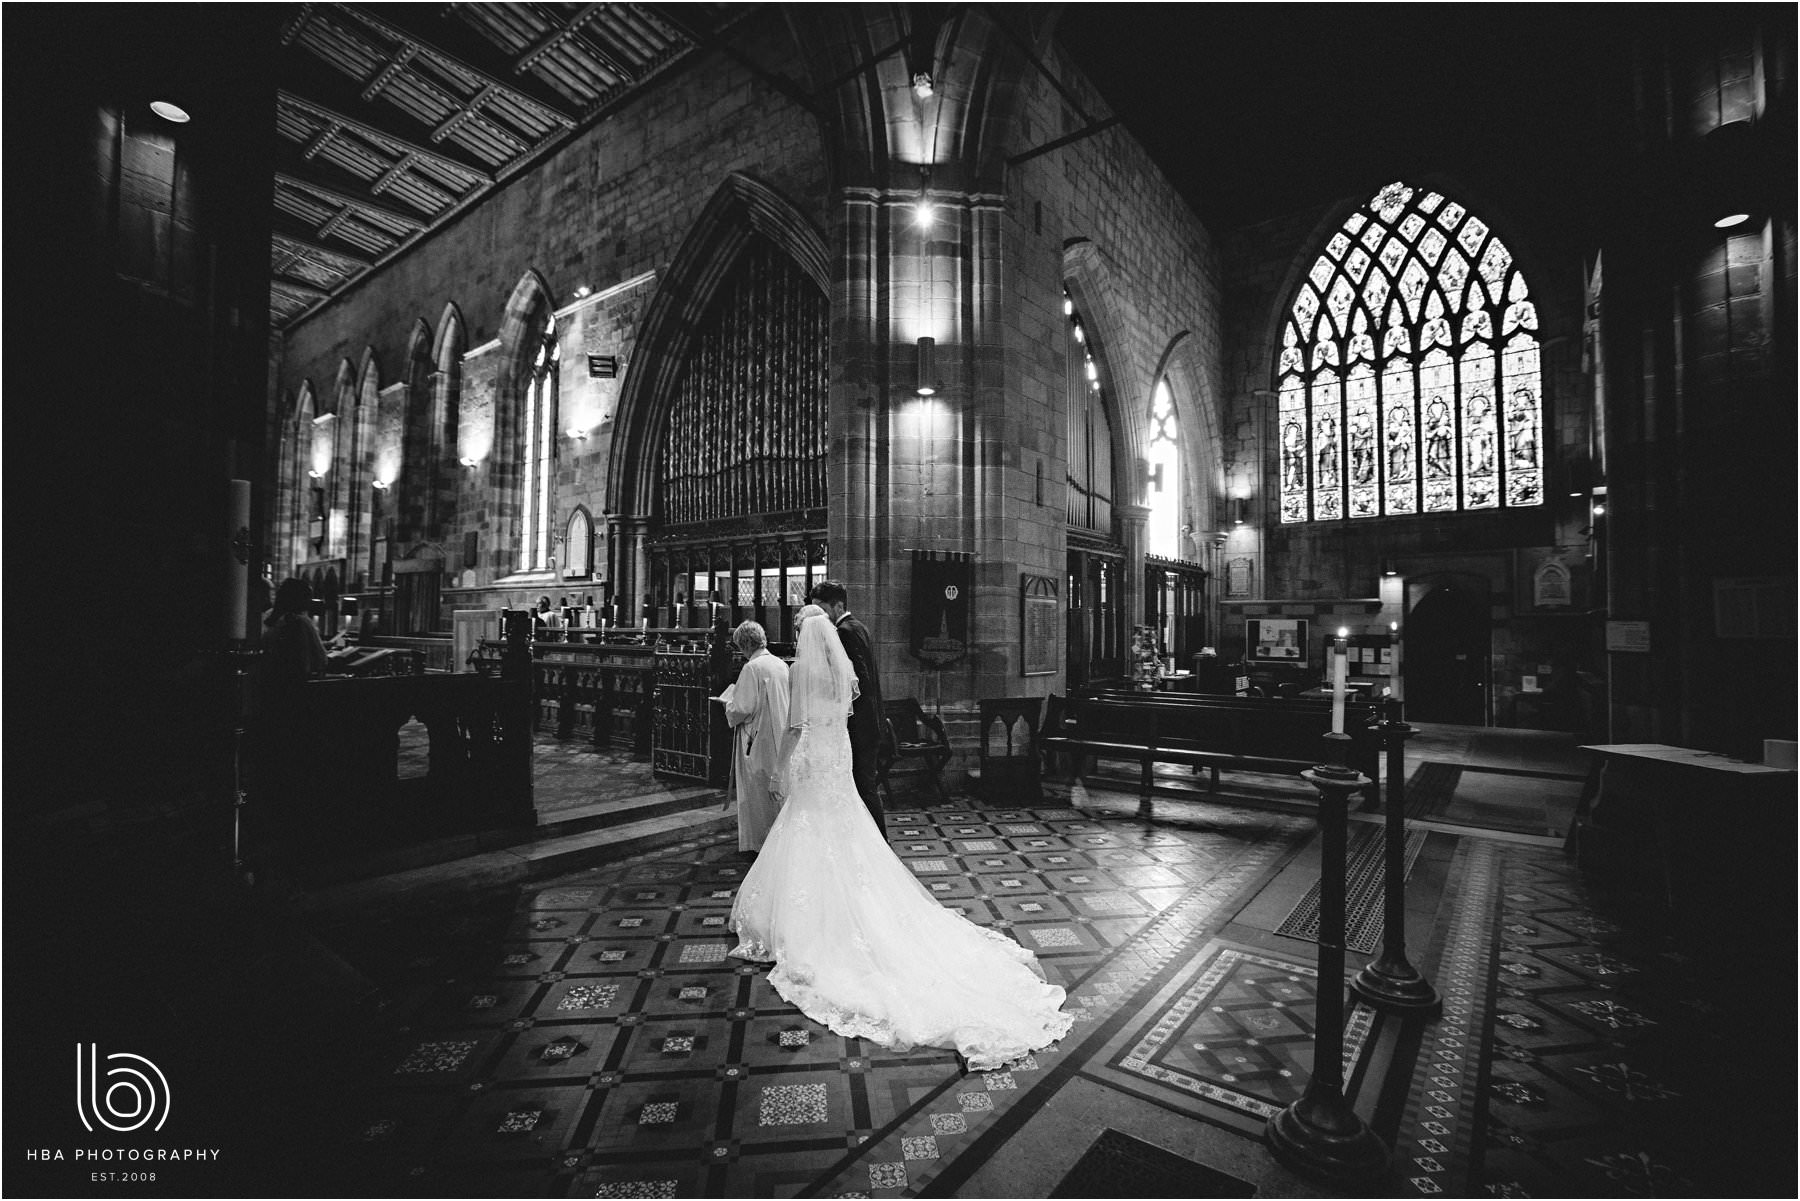 the bride and groom getting married at St Oswalds in Ashbourne